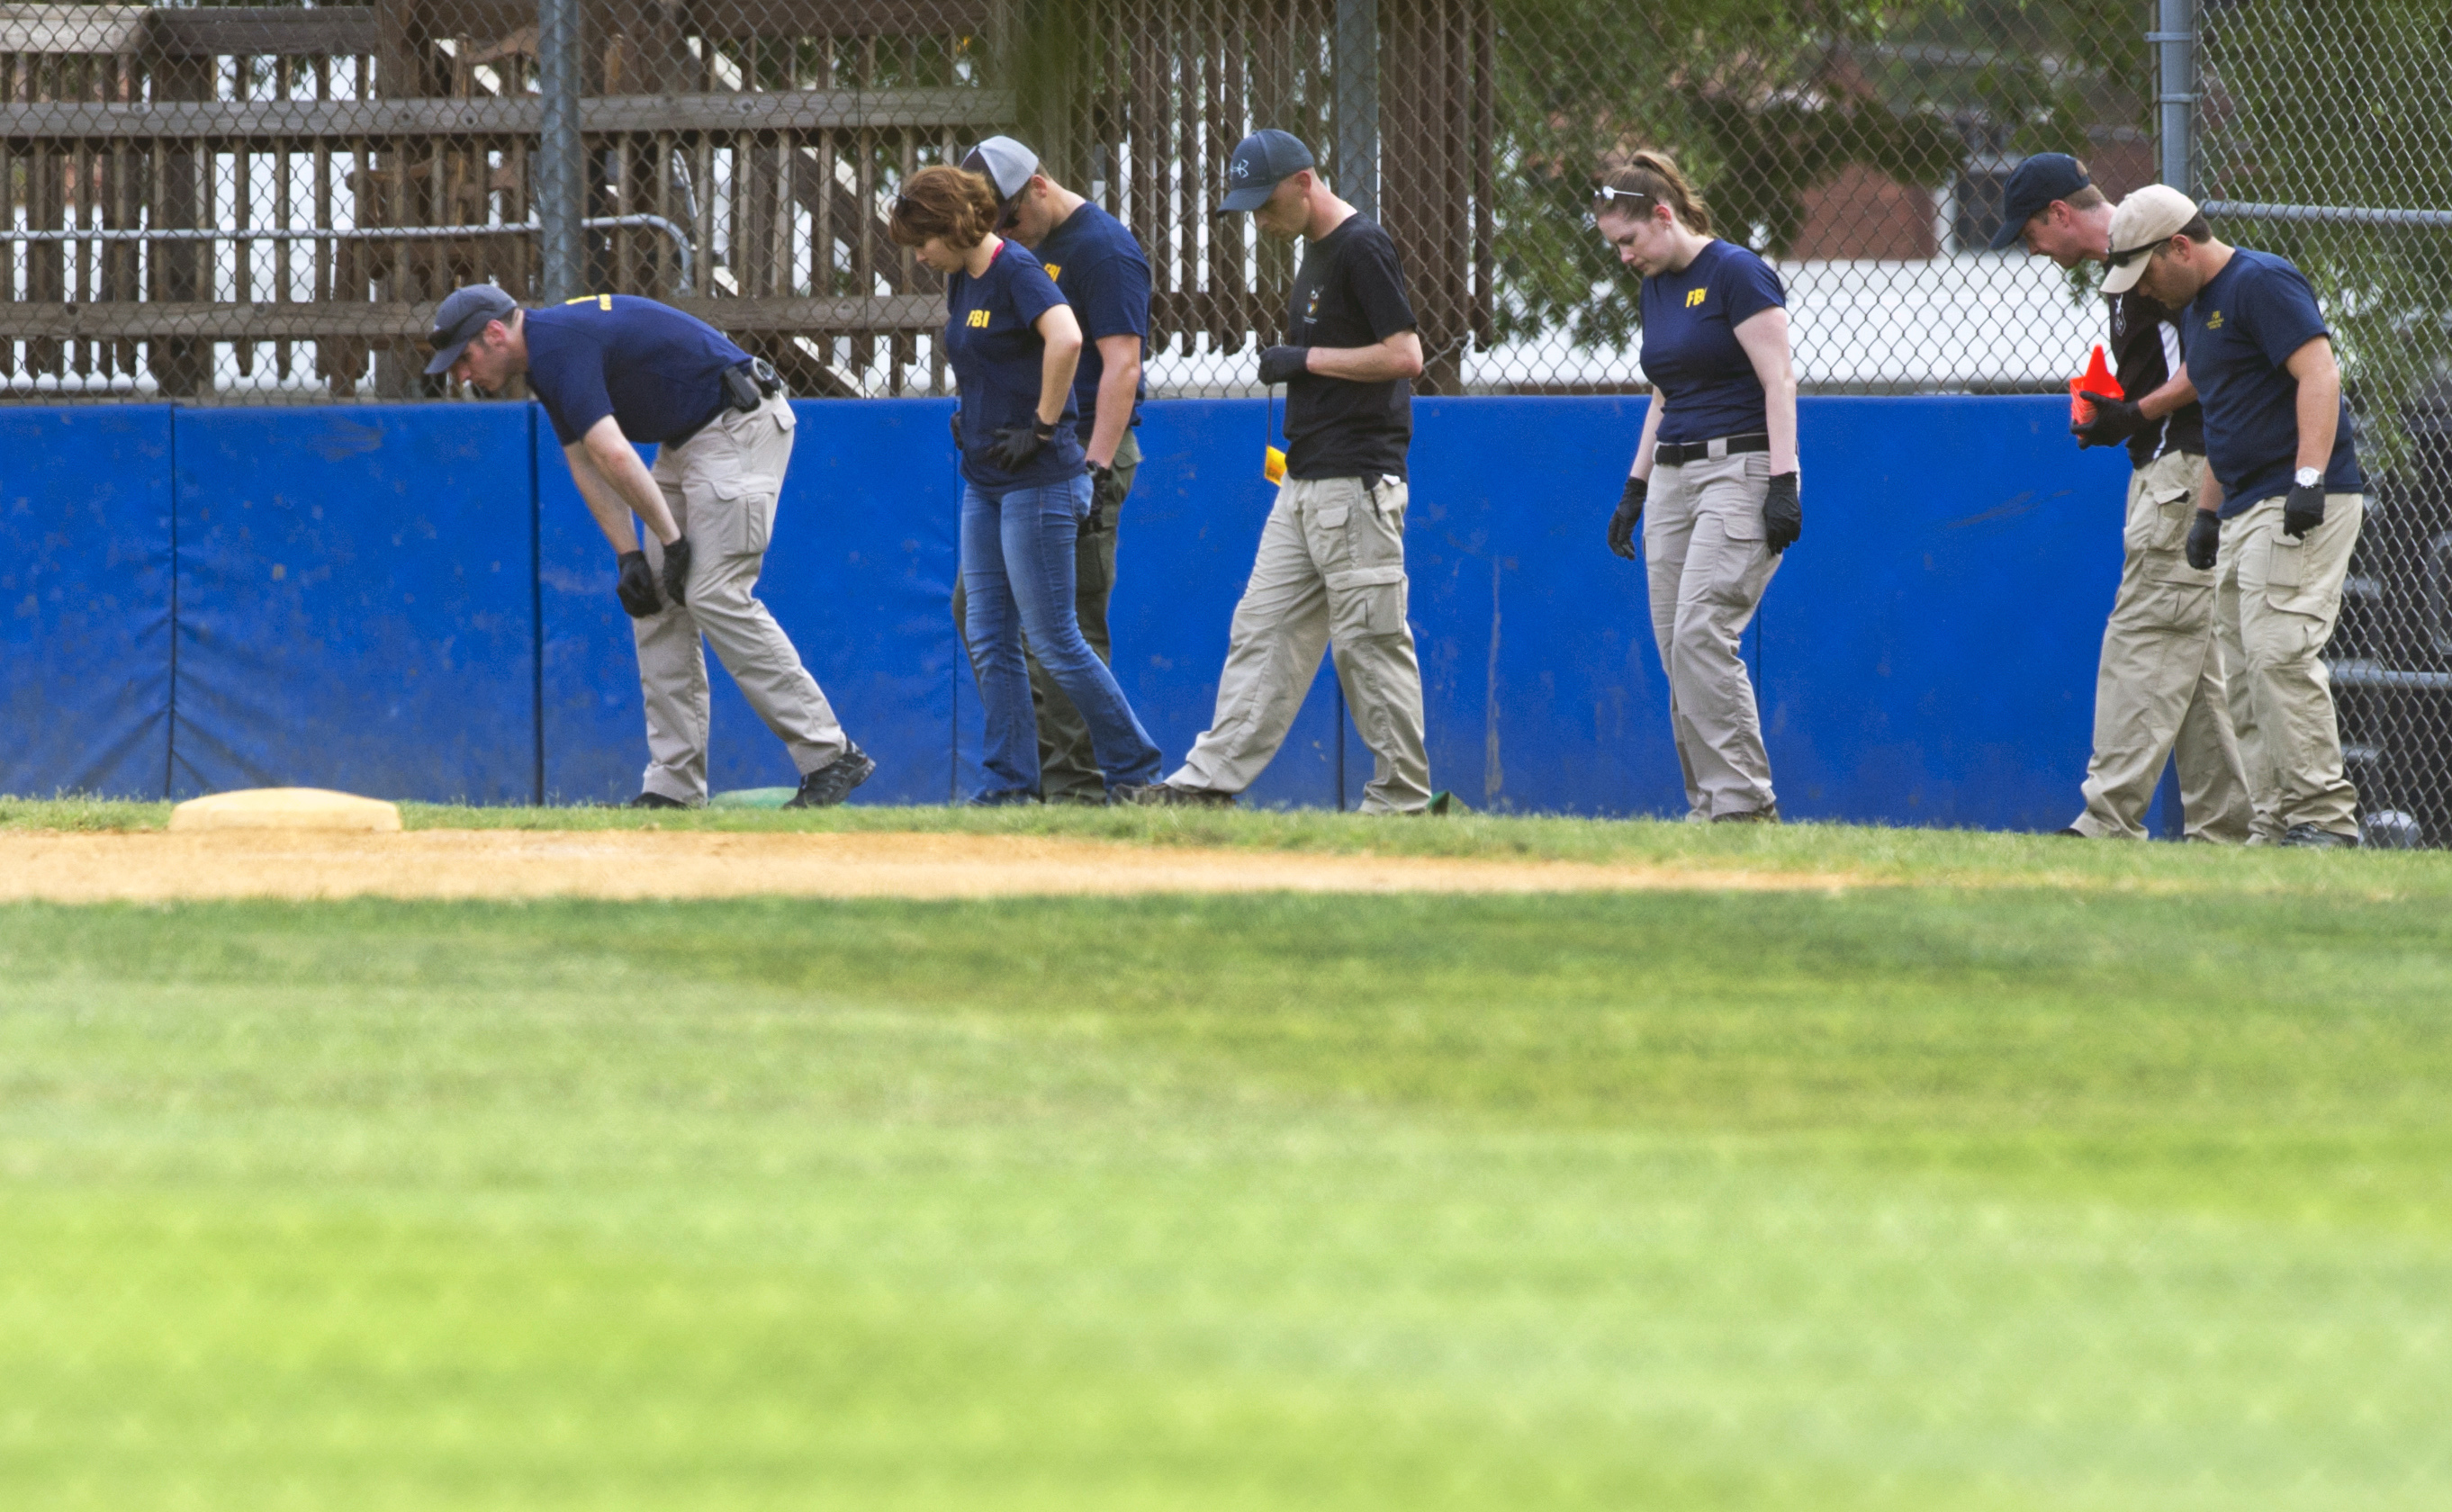 The FBI Evidence Response Team inspects the third base side of the baseball field in Alexandria, Va., June 14, 2017, where a rifle-wielding attacker opened fire on Republican lawmakers at a congressional baseball practice.